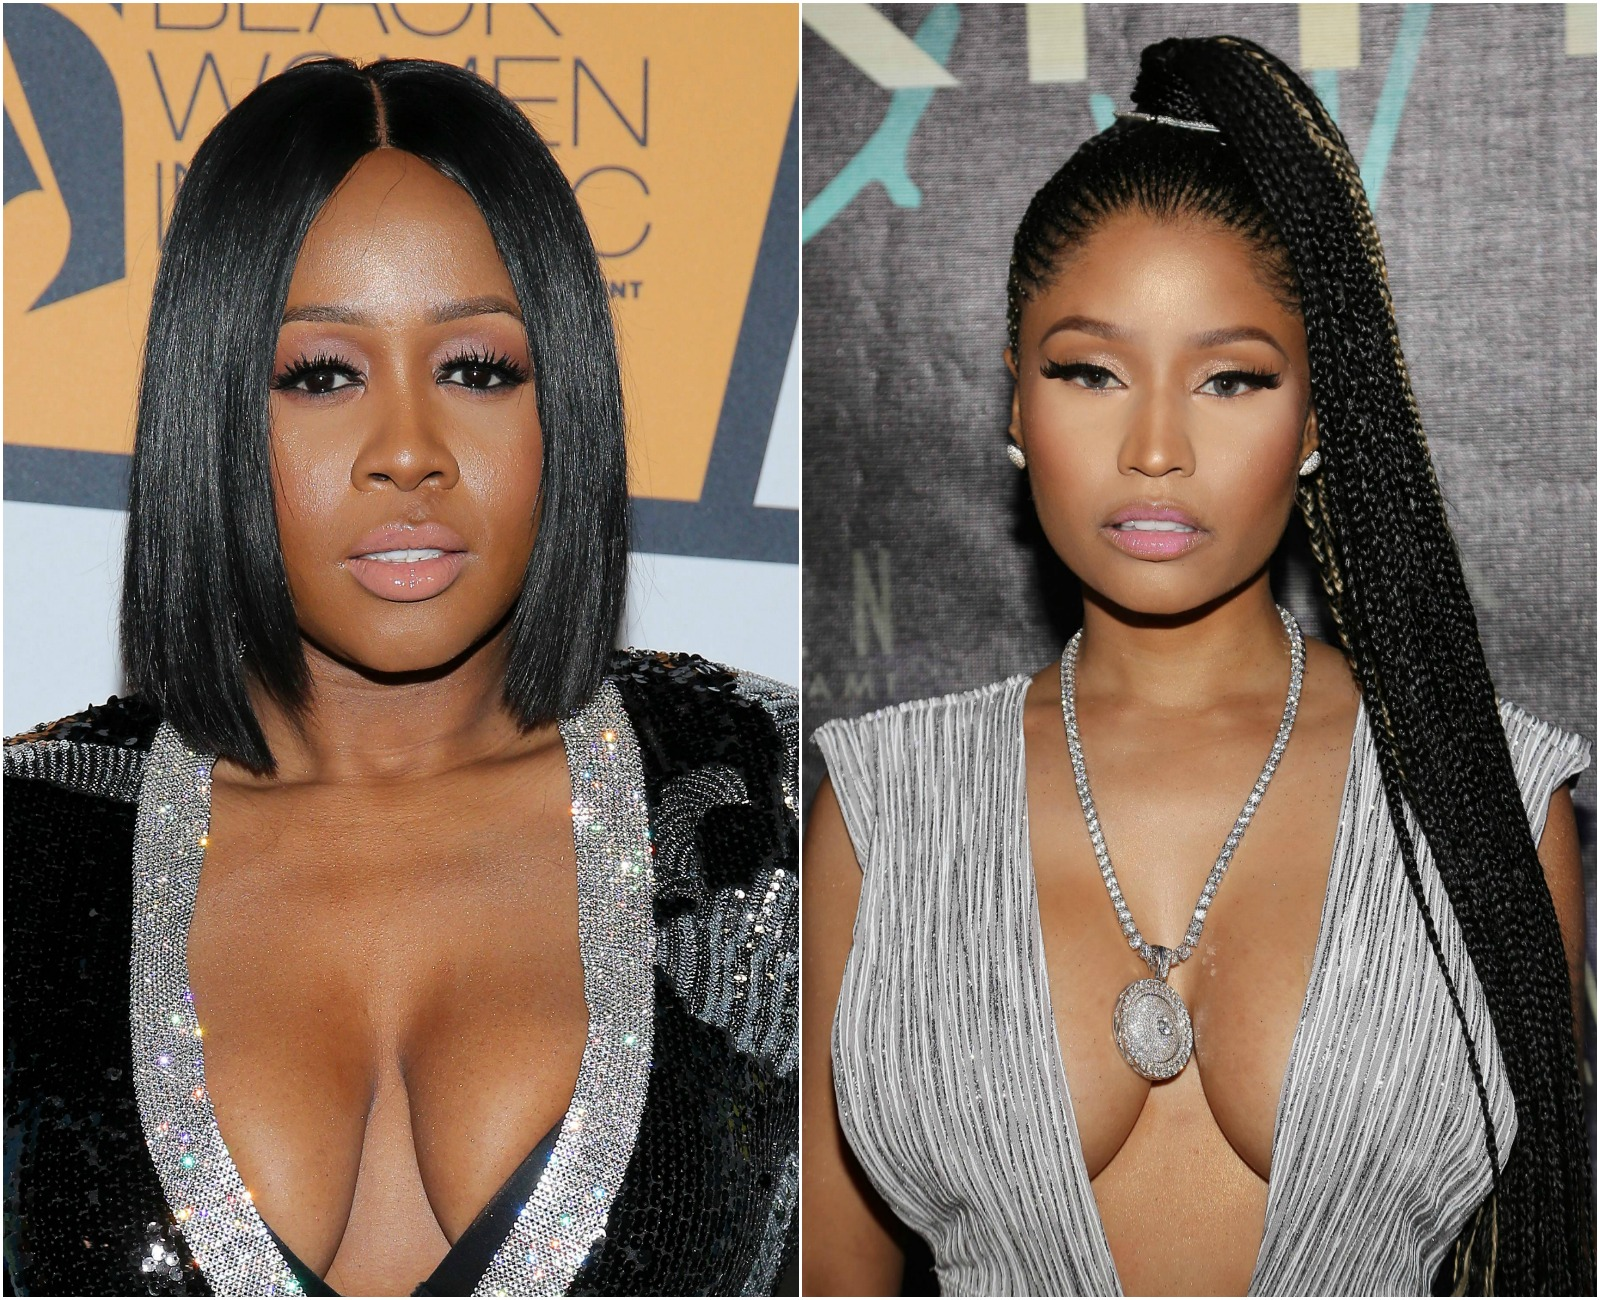 Remy Ma/ Nicki Minaj Collage